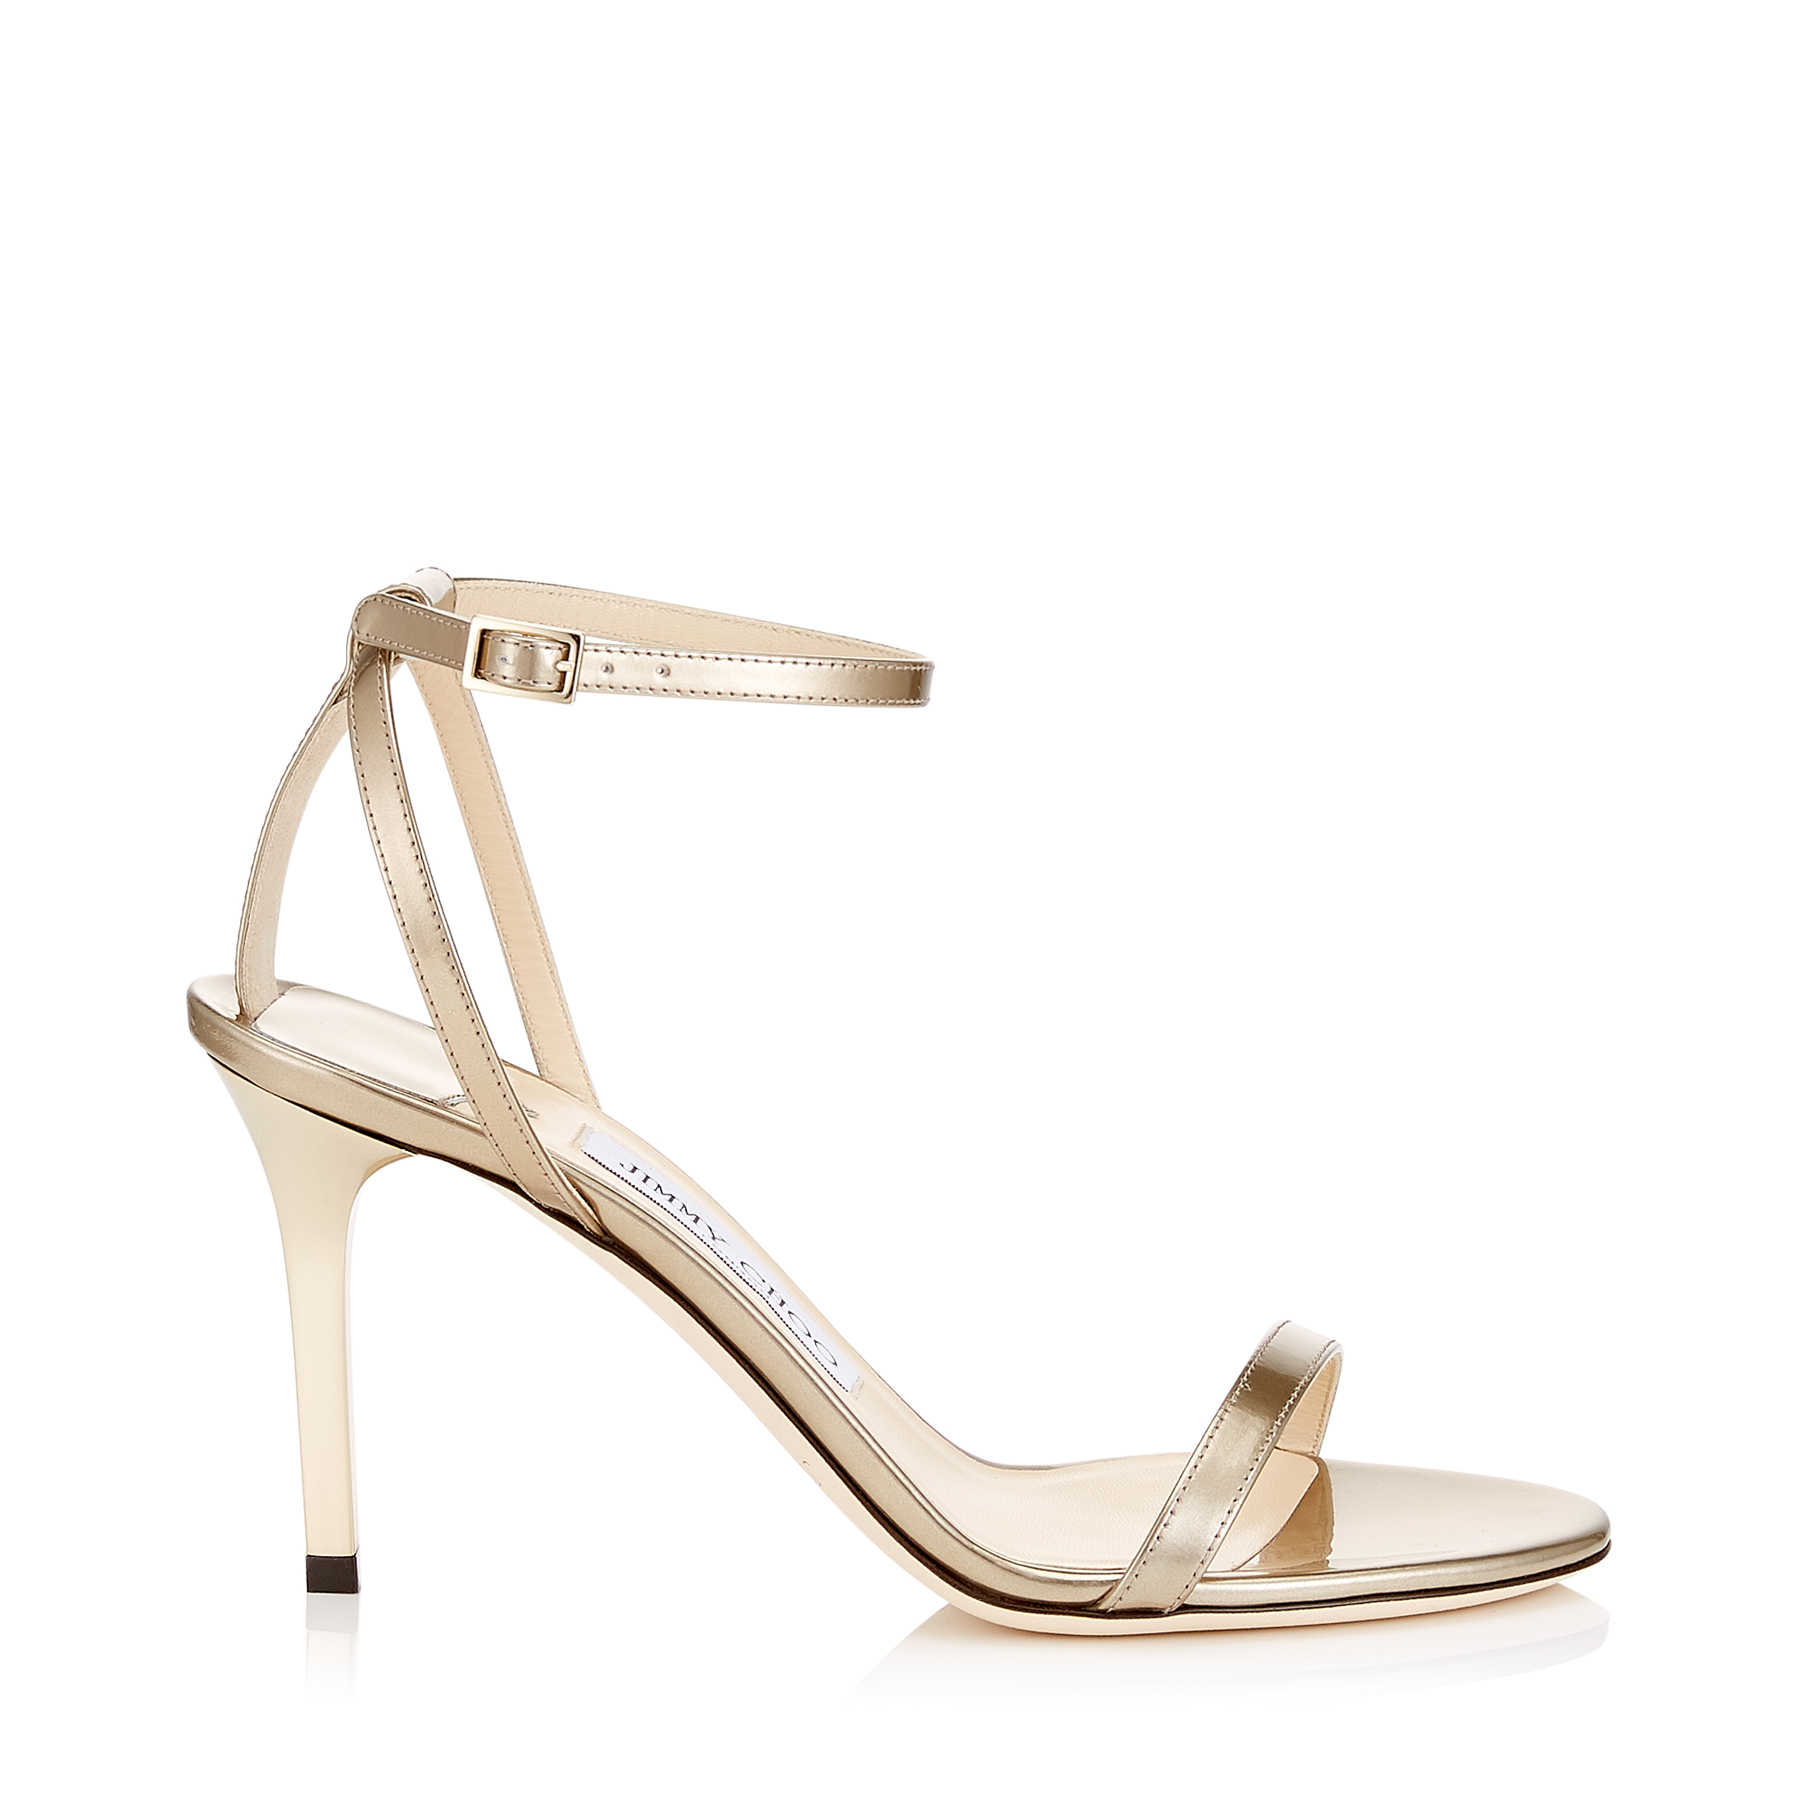 MINNY 85 Gold Liquid Mirror Leather Sandals by Jimmy Choo